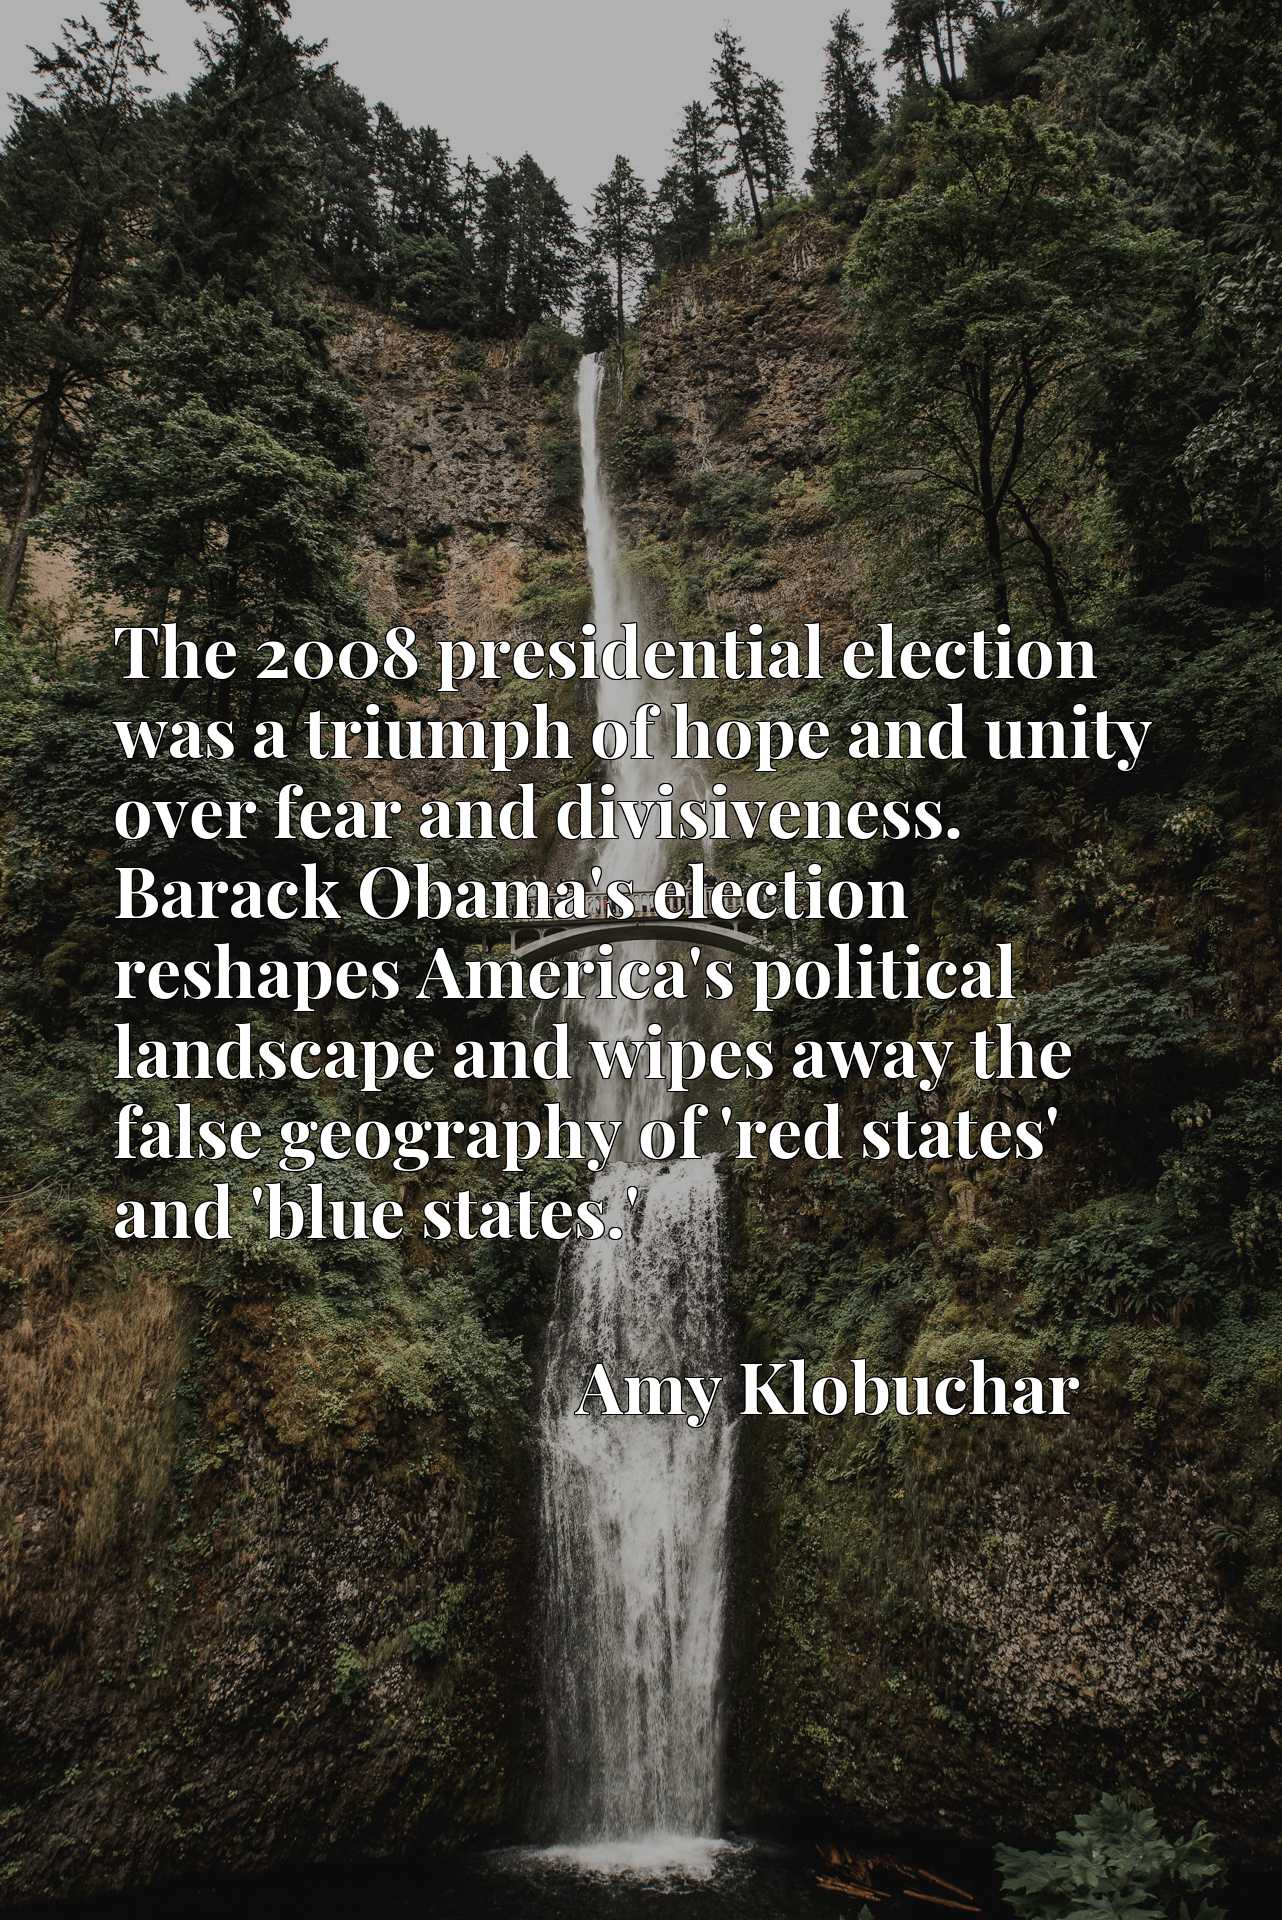 The 2008 presidential election was a triumph of hope and unity over fear and divisiveness. Barack Obama's election reshapes America's political landscape and wipes away the false geography of 'red states' and 'blue states.'